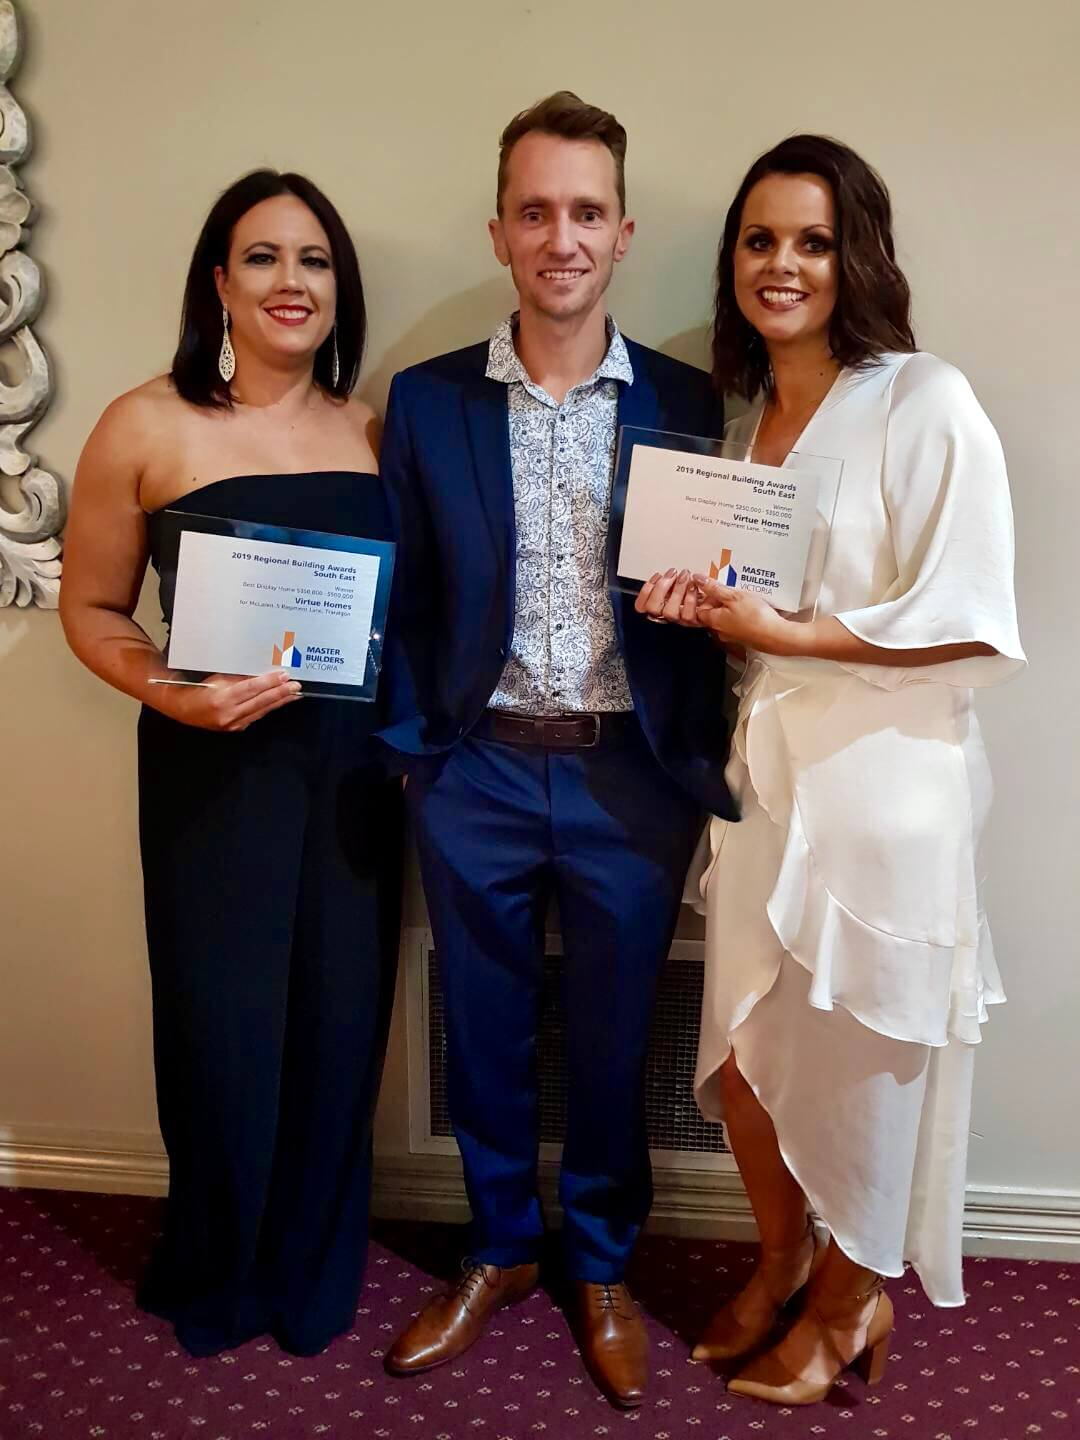 Some of the Virtue Homes team with their Master builders Awards 2019